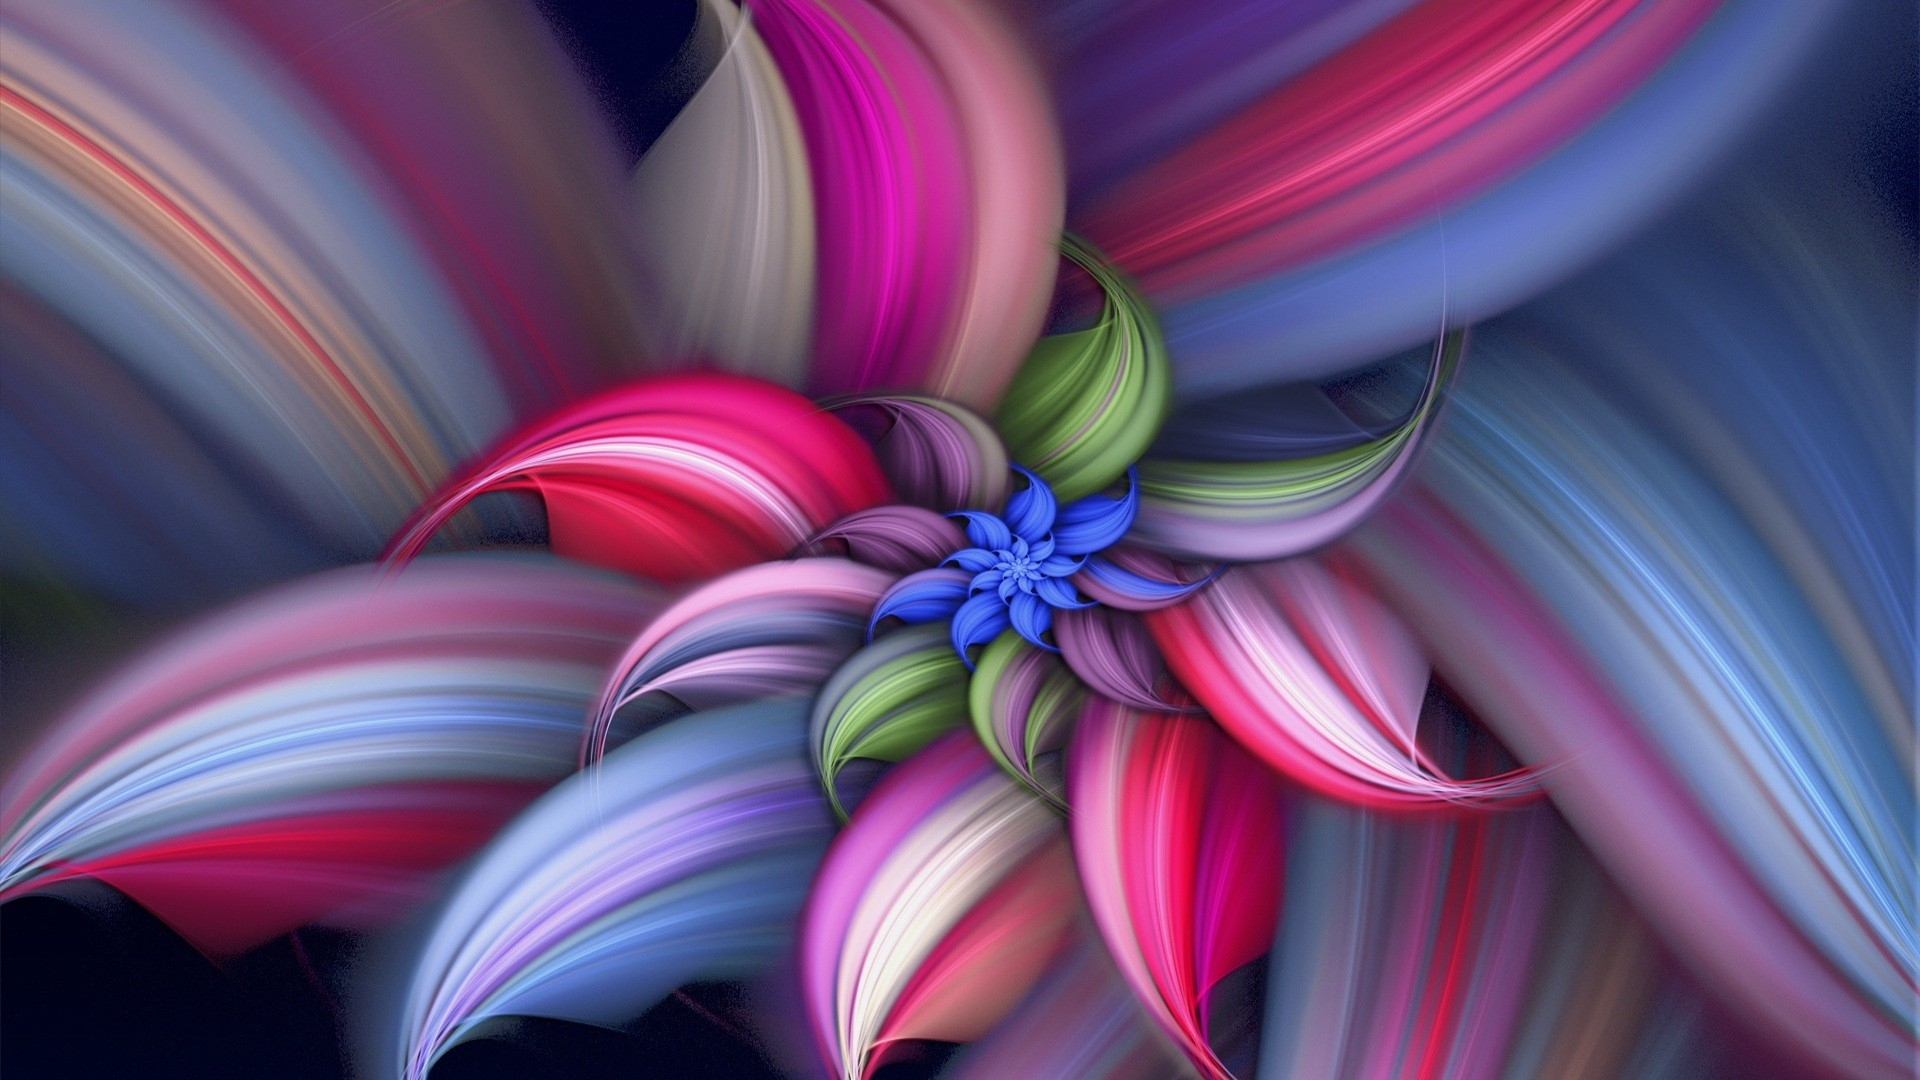 14 Abstract Flower Floral Design Images